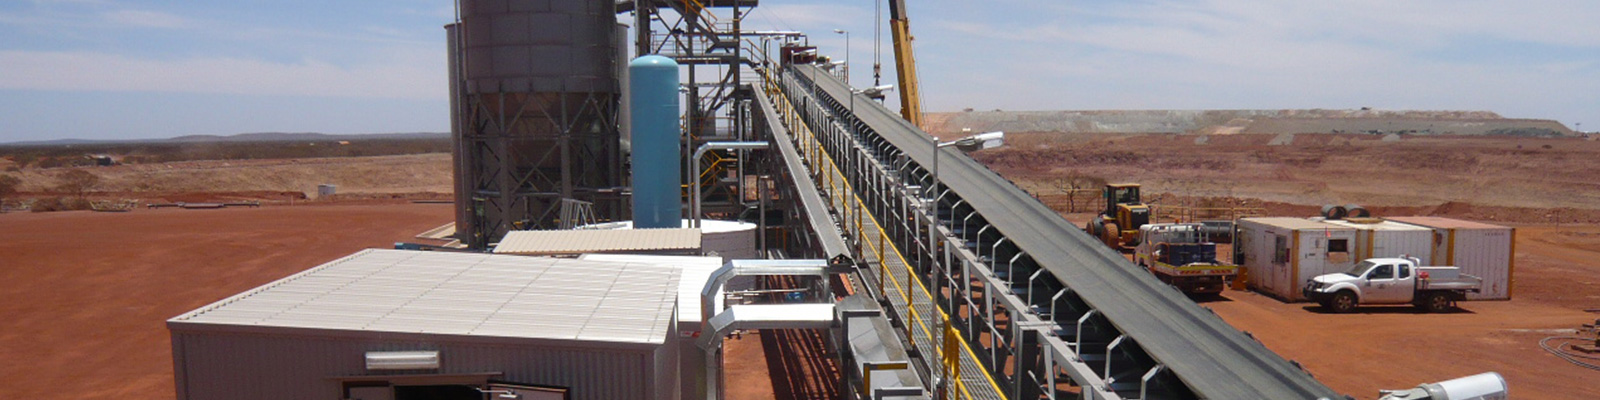 DeGrussa Conveyor